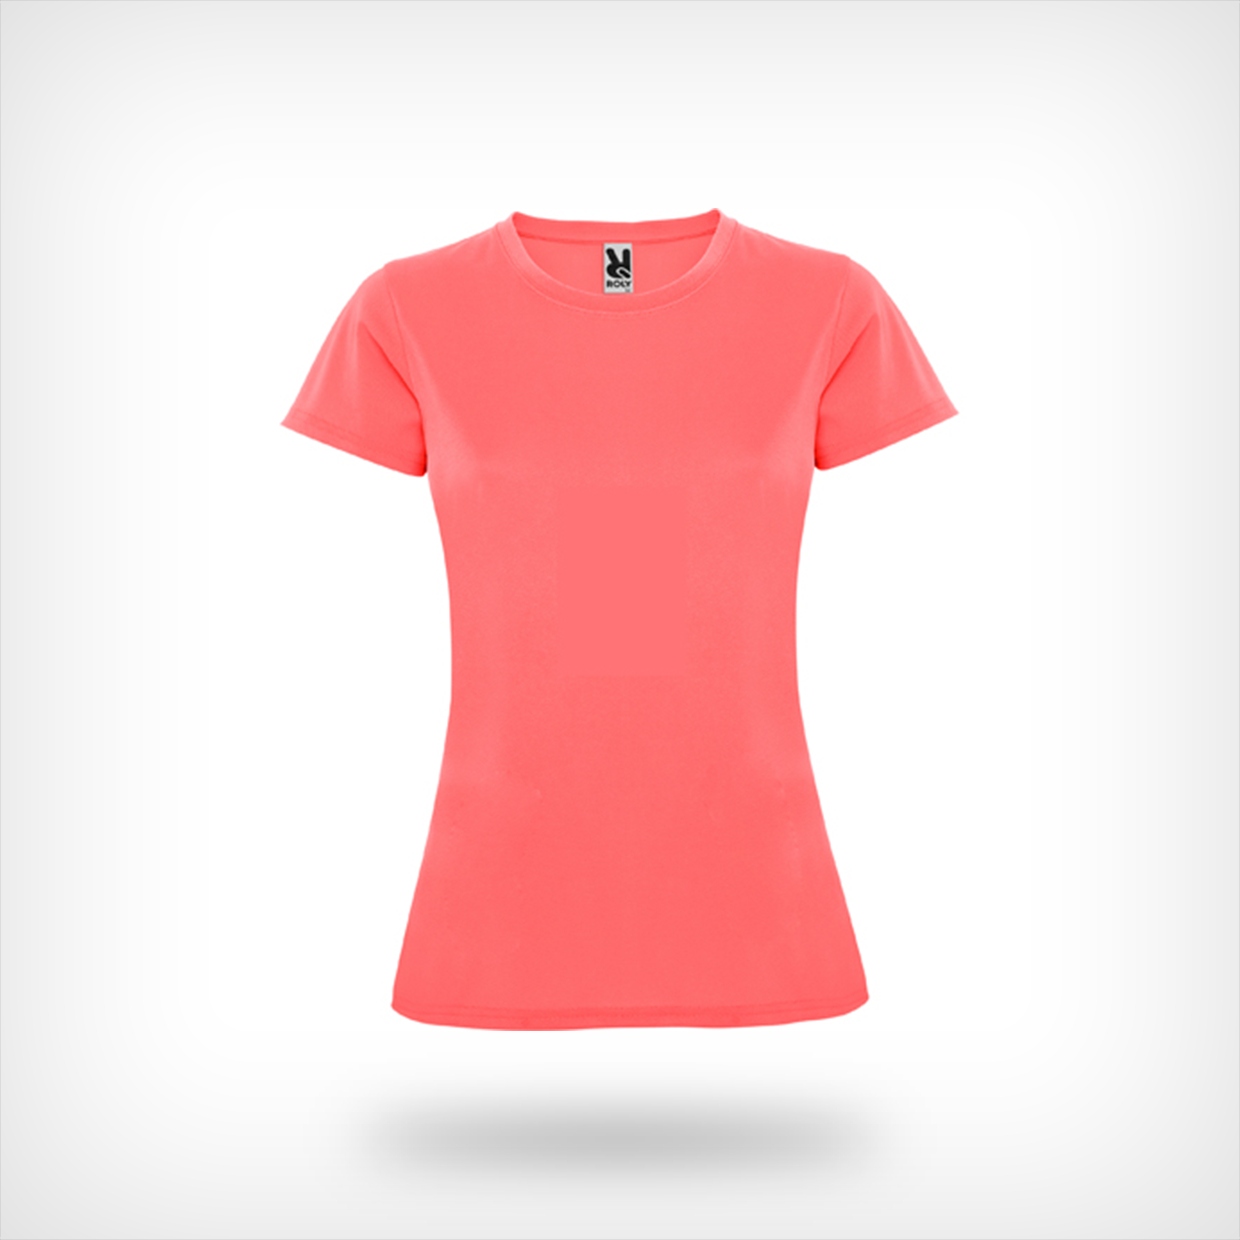 Roly Montecarlo dames t-shirt, RMC423